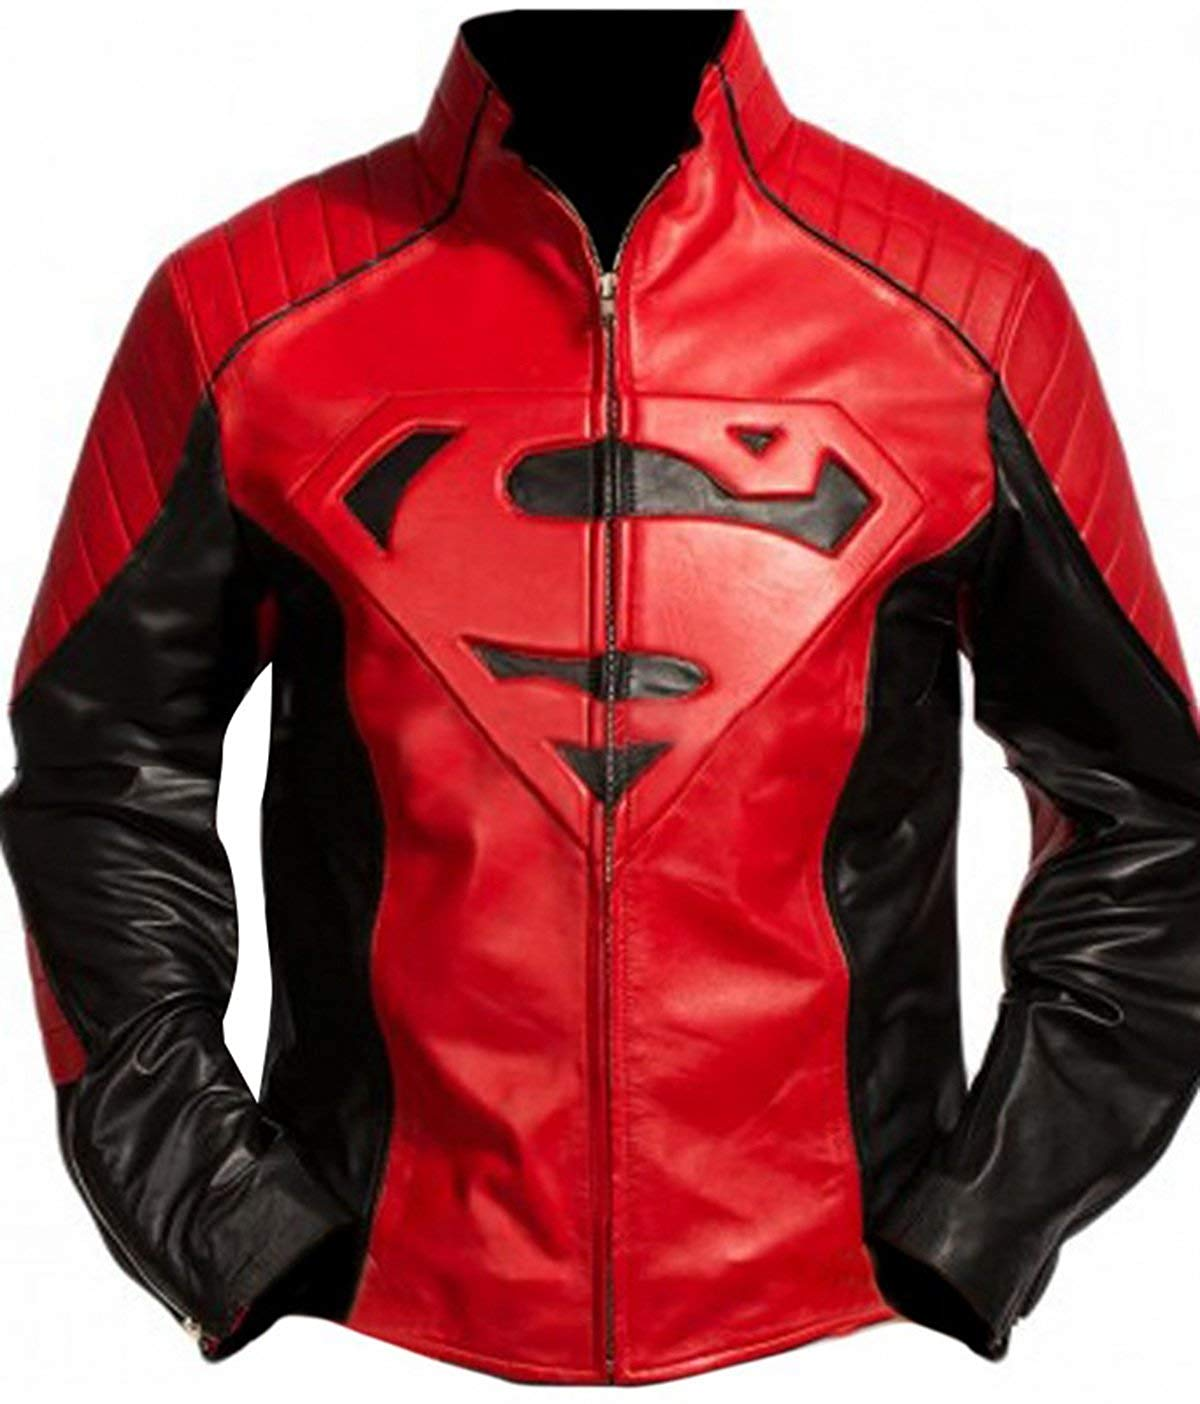 cc9b5a380 Tom Welling Superman Smallvile Red and Black Biker Leather Bomber Jacket